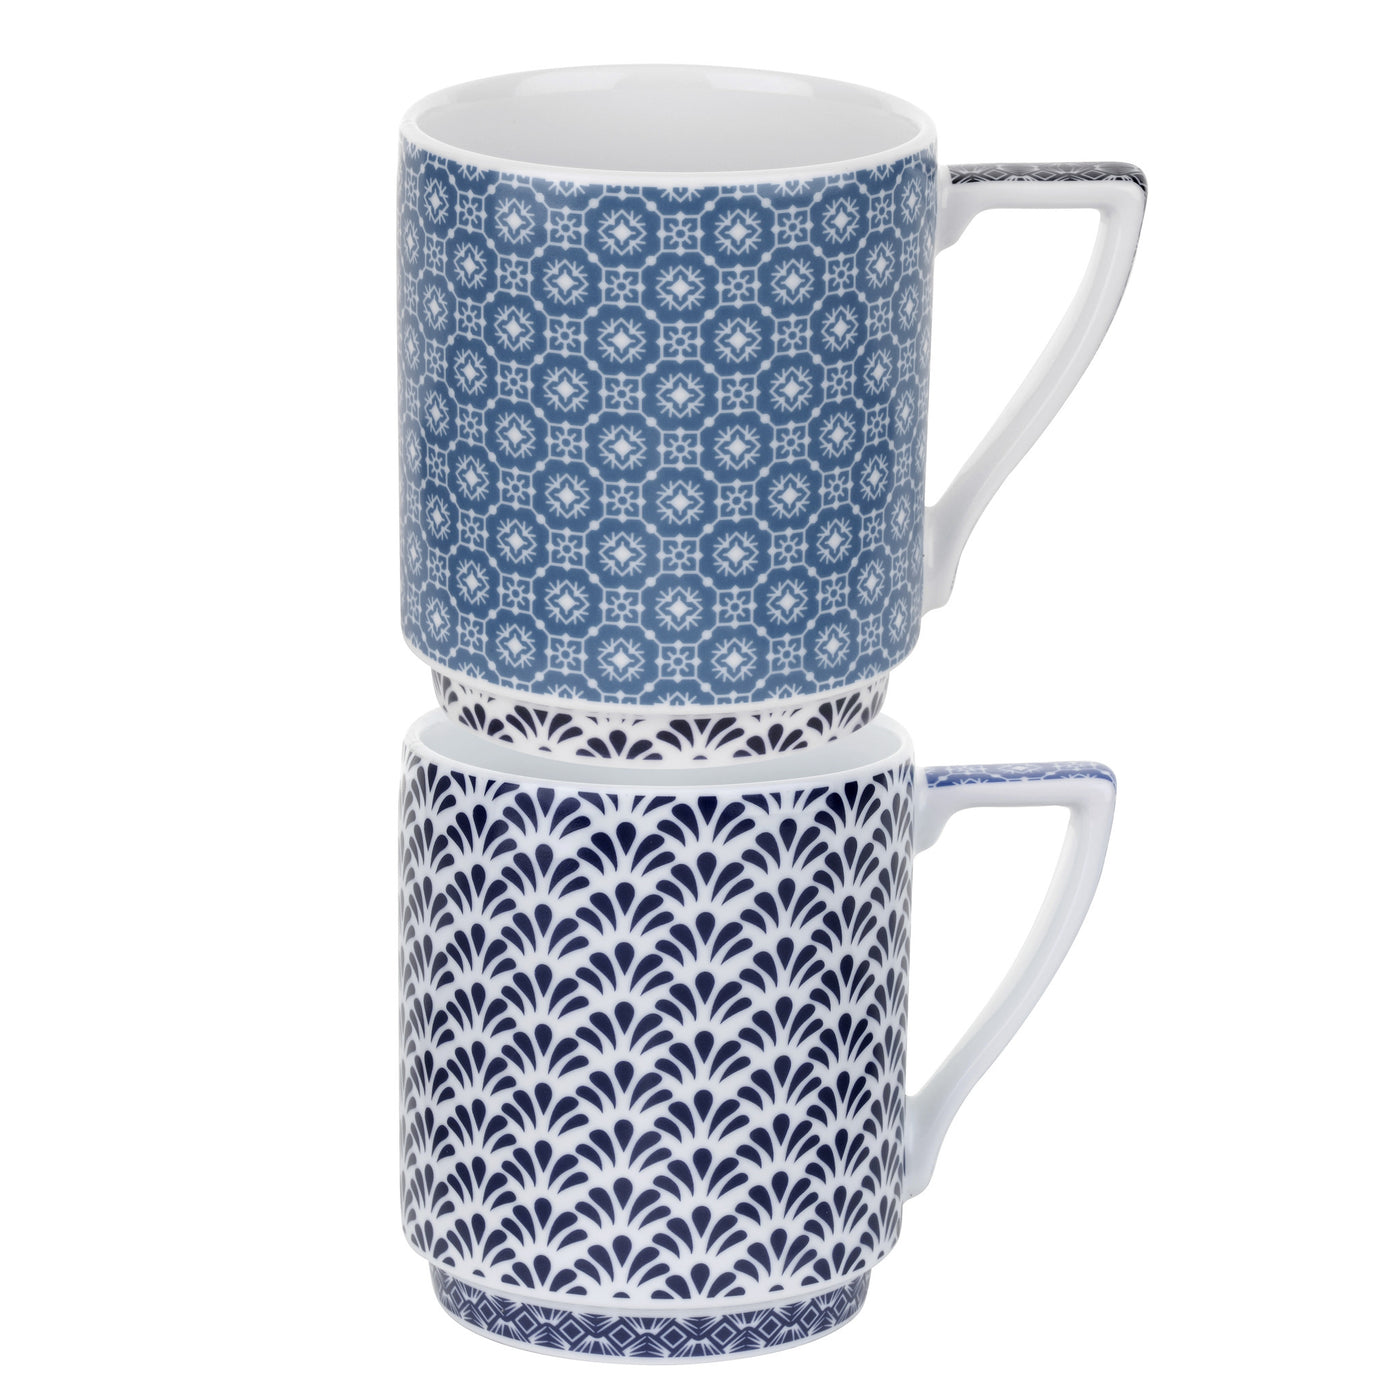 Balfour III & IV Stacking Mugs (Set of 2)